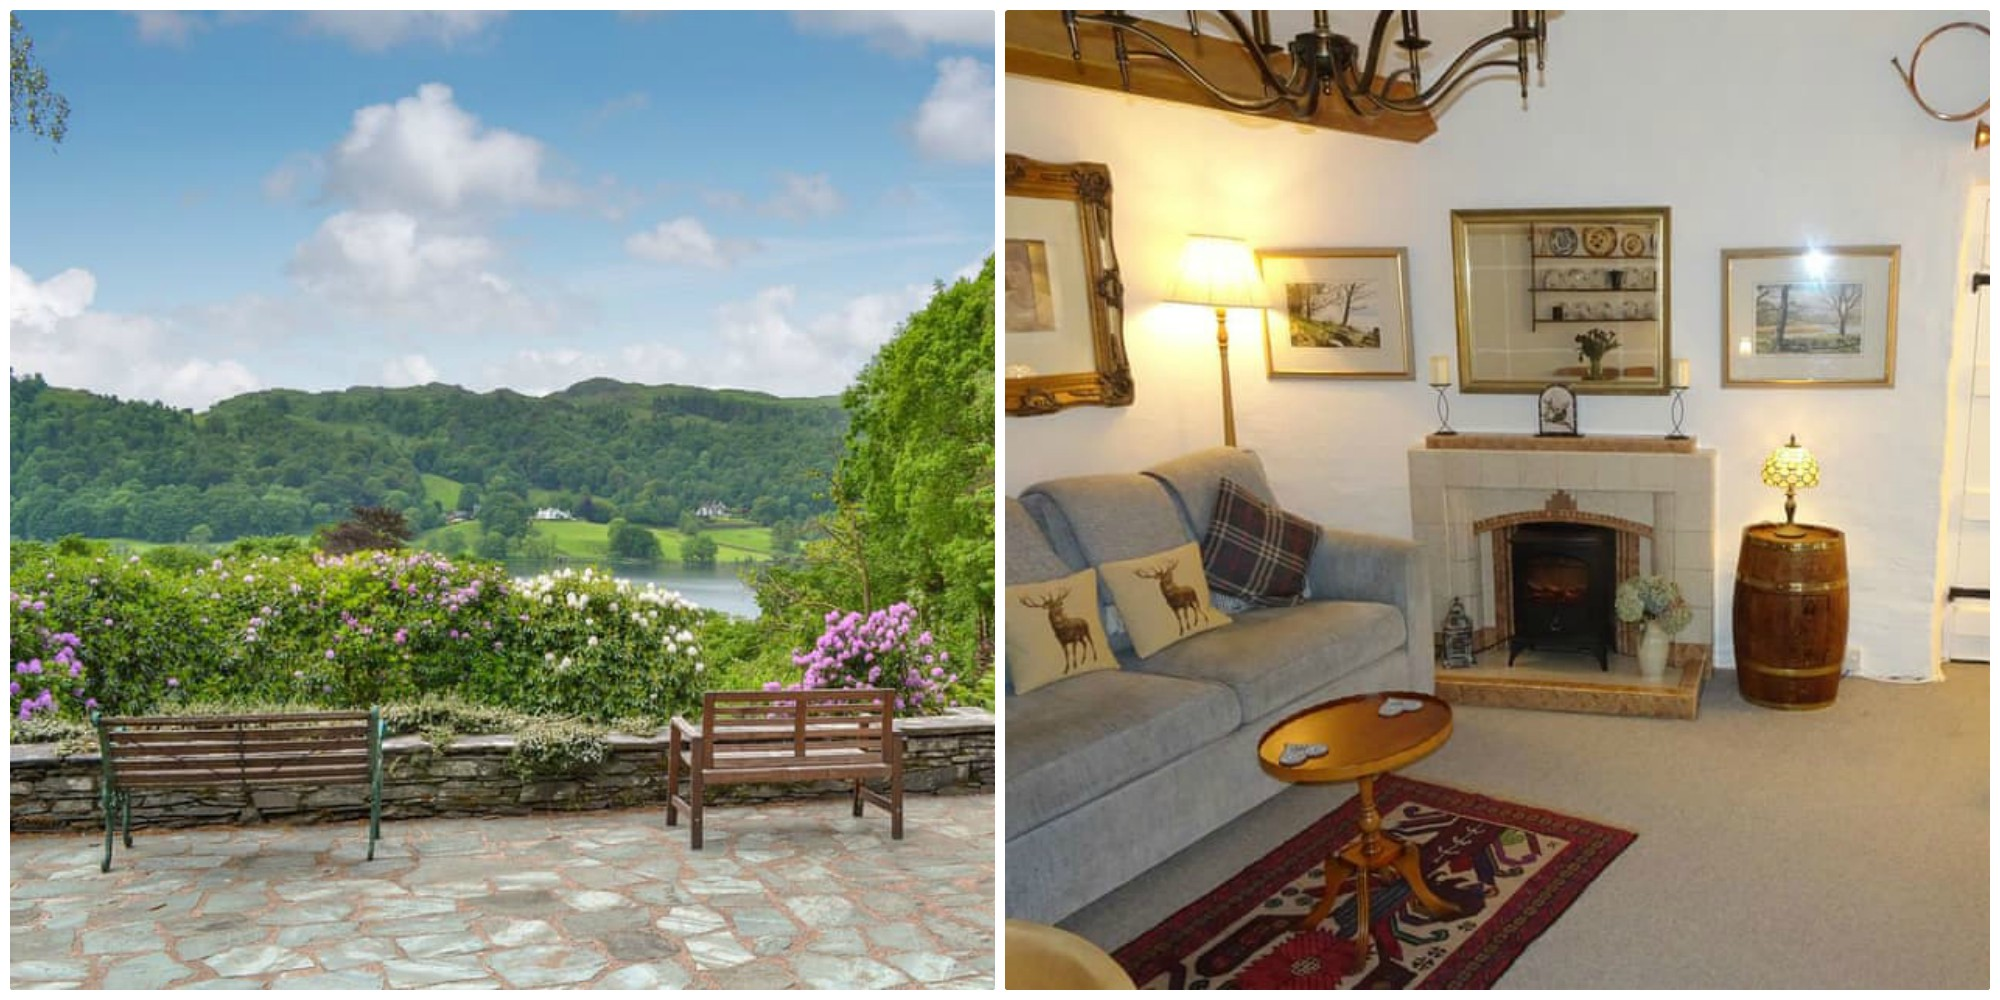 fabulous views of Grasmere from this dog friendly self-catering property for 2